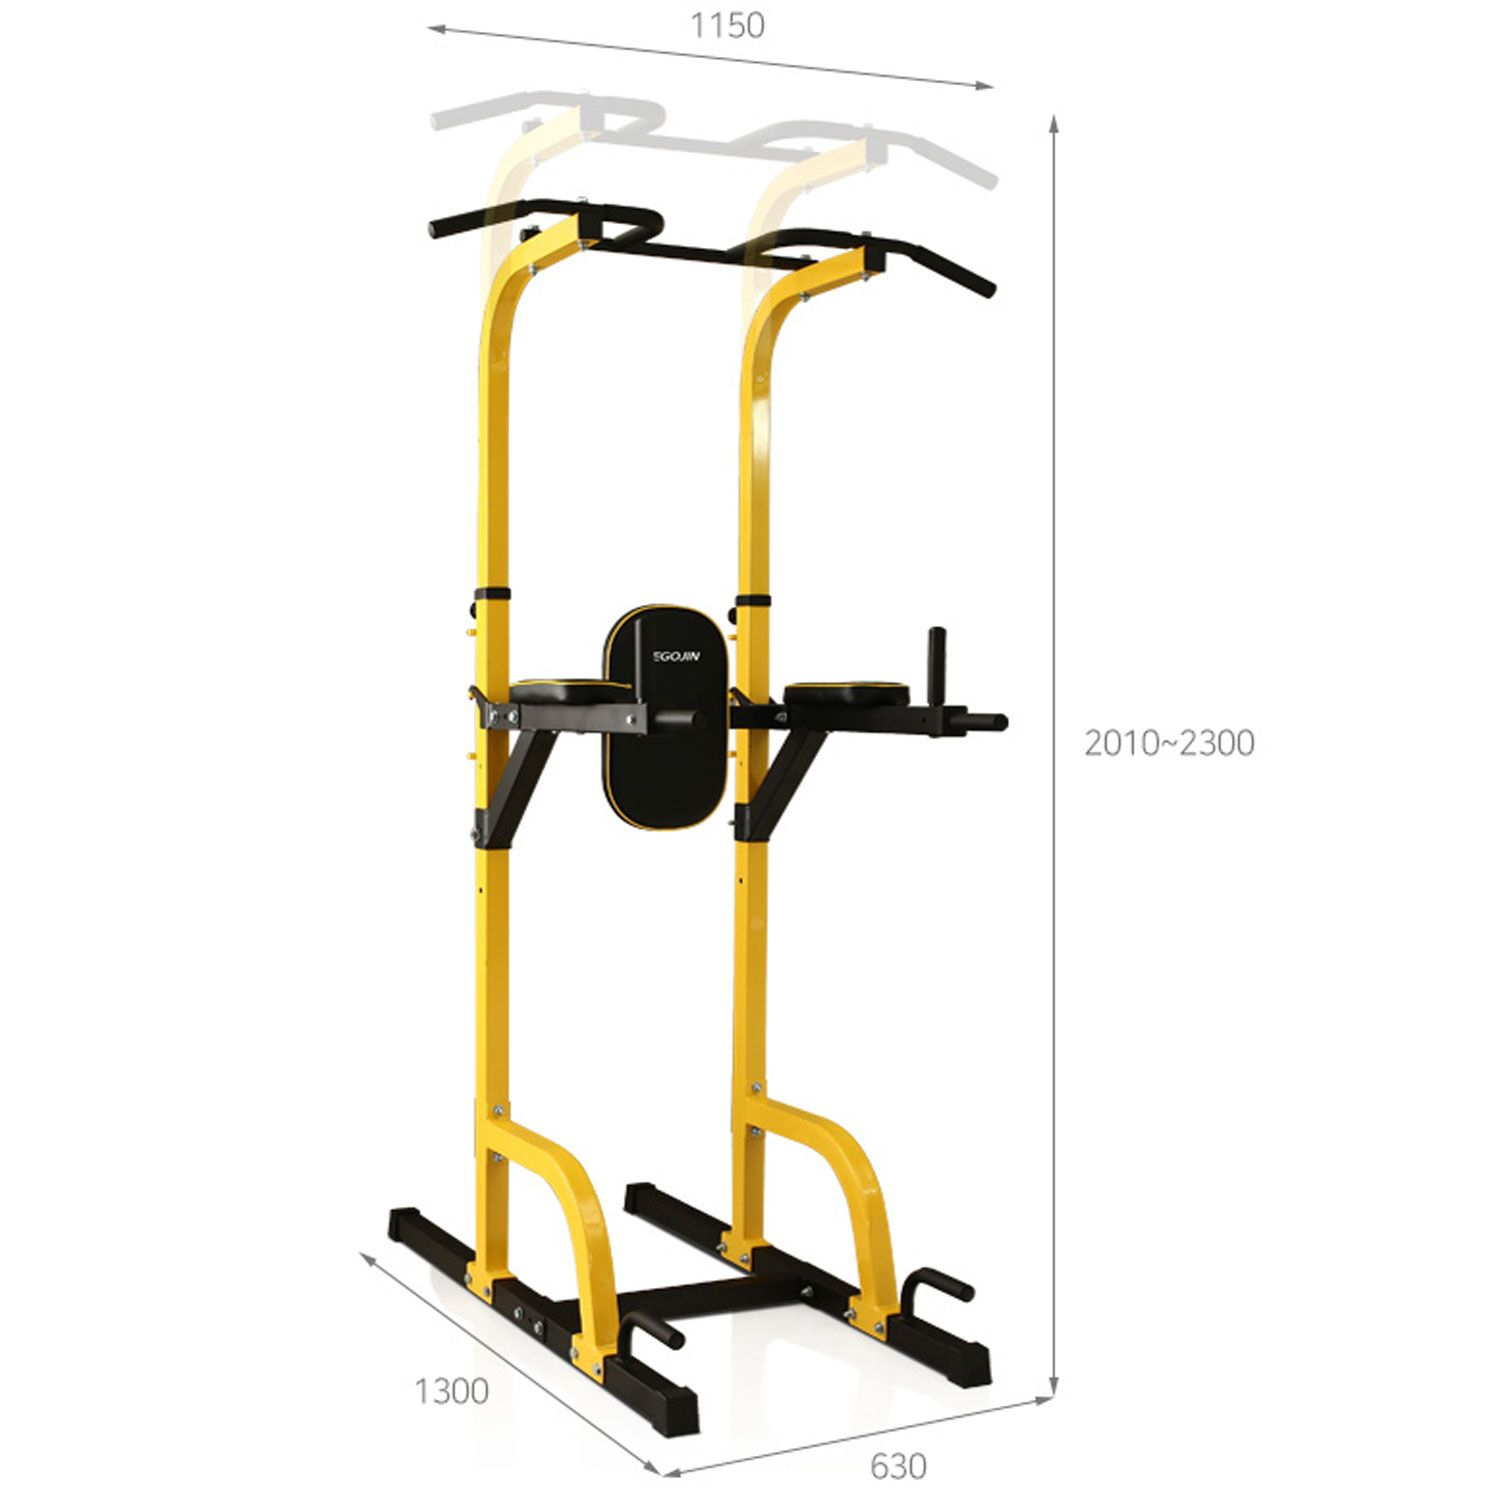 MB Barbell / Pull-up bar DFC Power Tower G009C